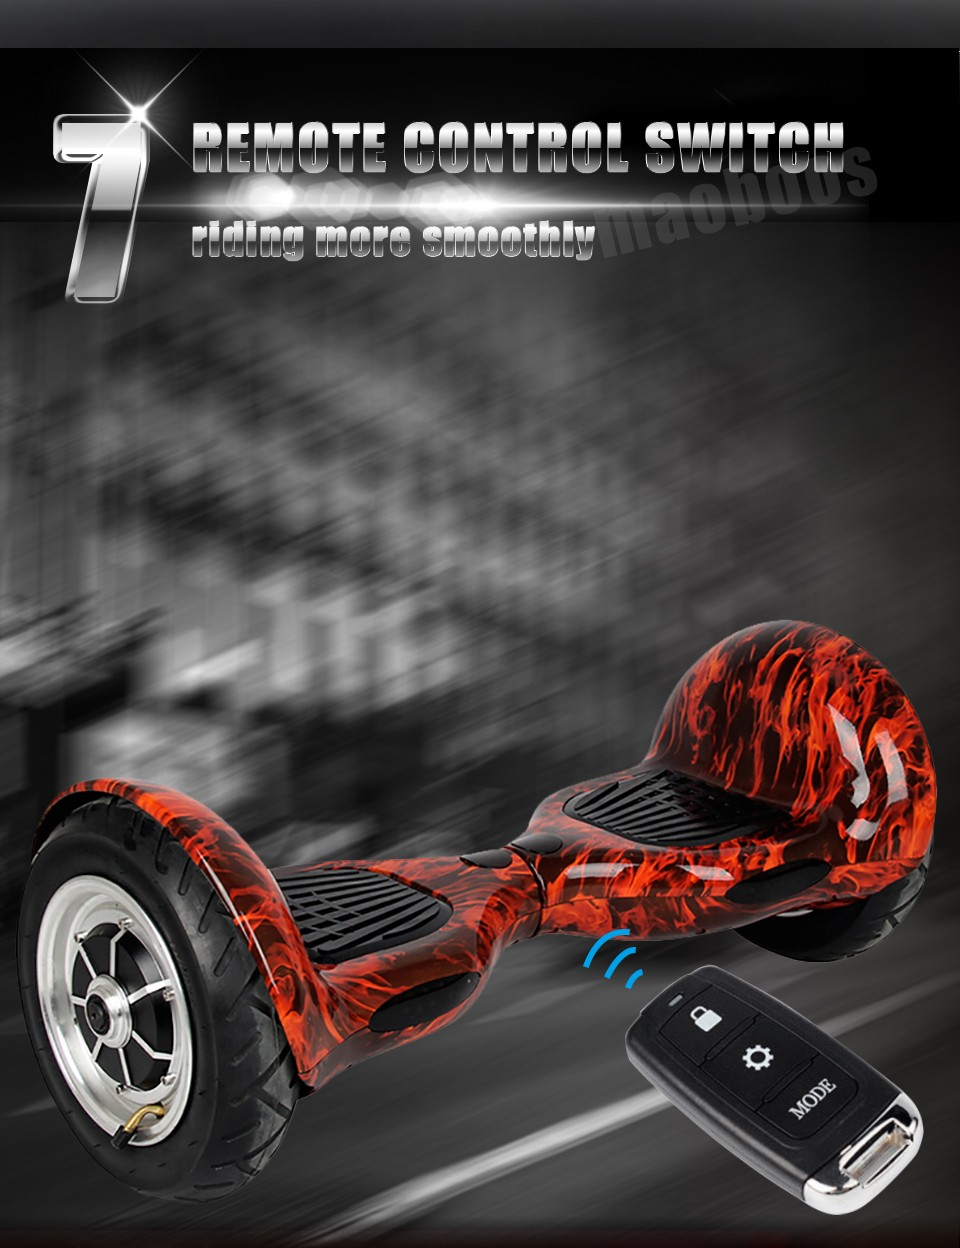 SM battrey bluetooch bag remote 10 inch self balance electric scooter Skateboard Standing Drift Board smart hoverboard